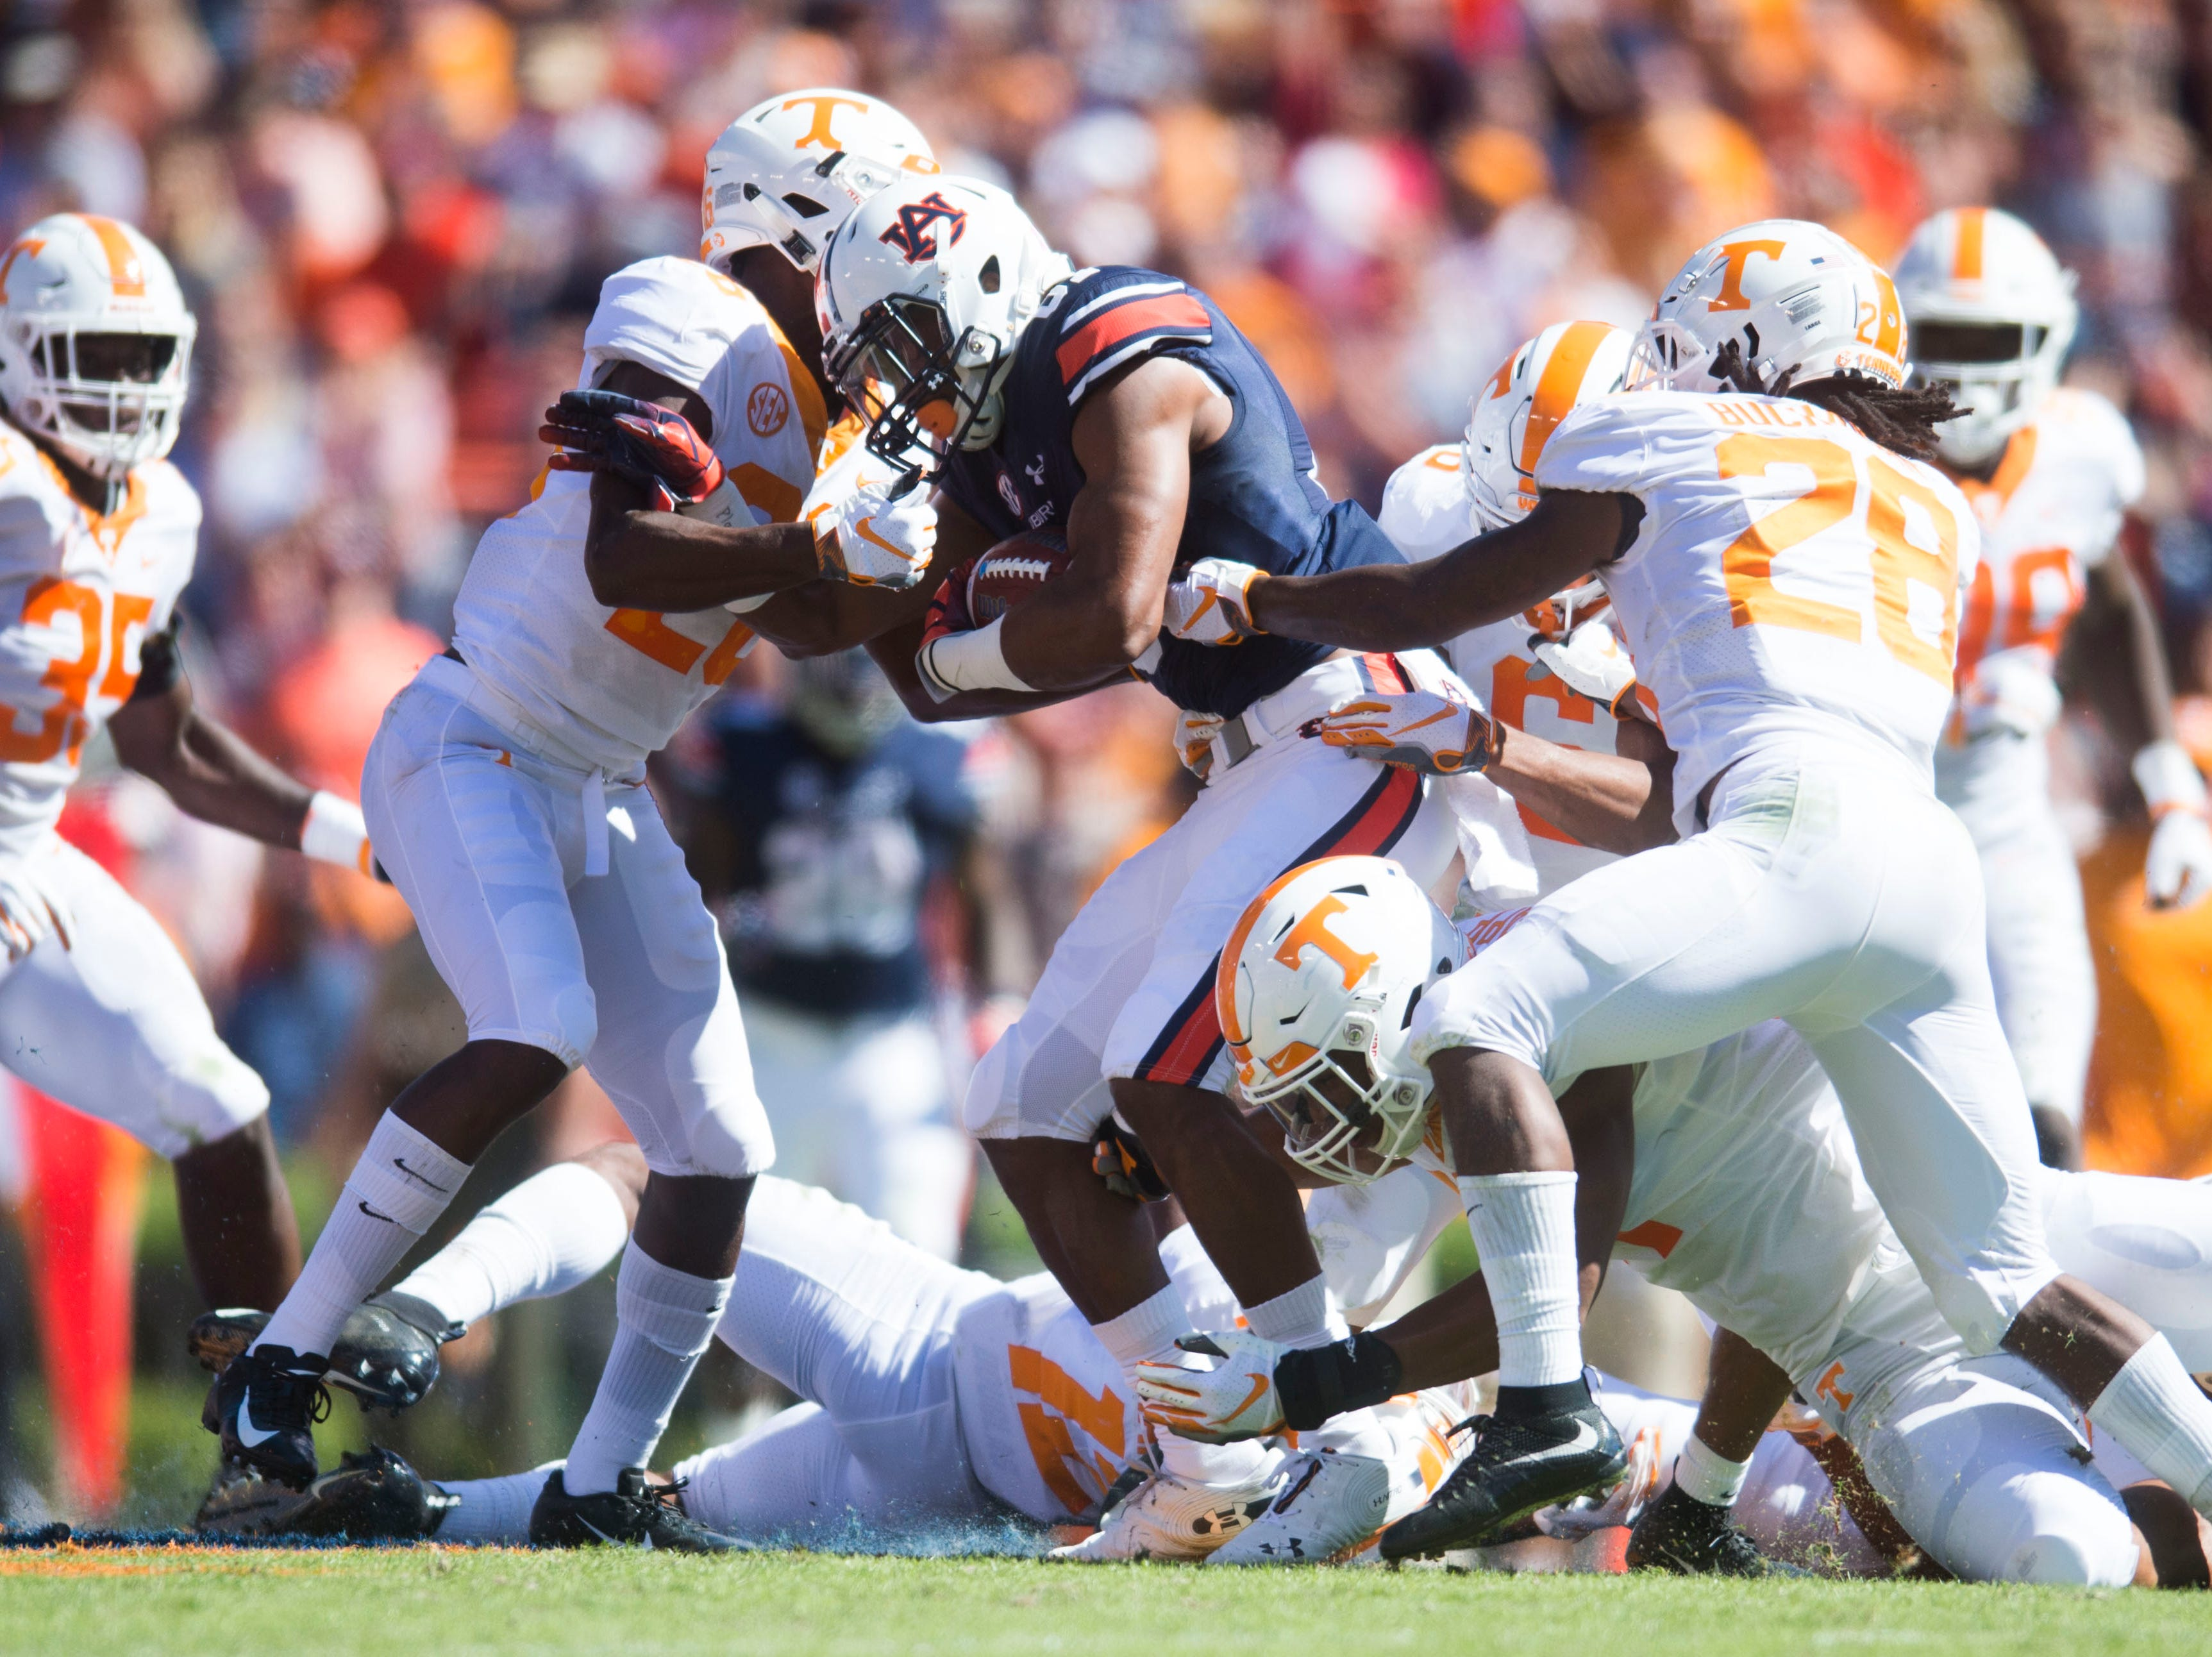 Auburn wide receiver Darius Slayton (81) is taken down by Tennessee players during a game between Tennessee and Auburn at Jordan-Hare Stadium in Auburn, Ala. Saturday, Oct. 13, 2018.